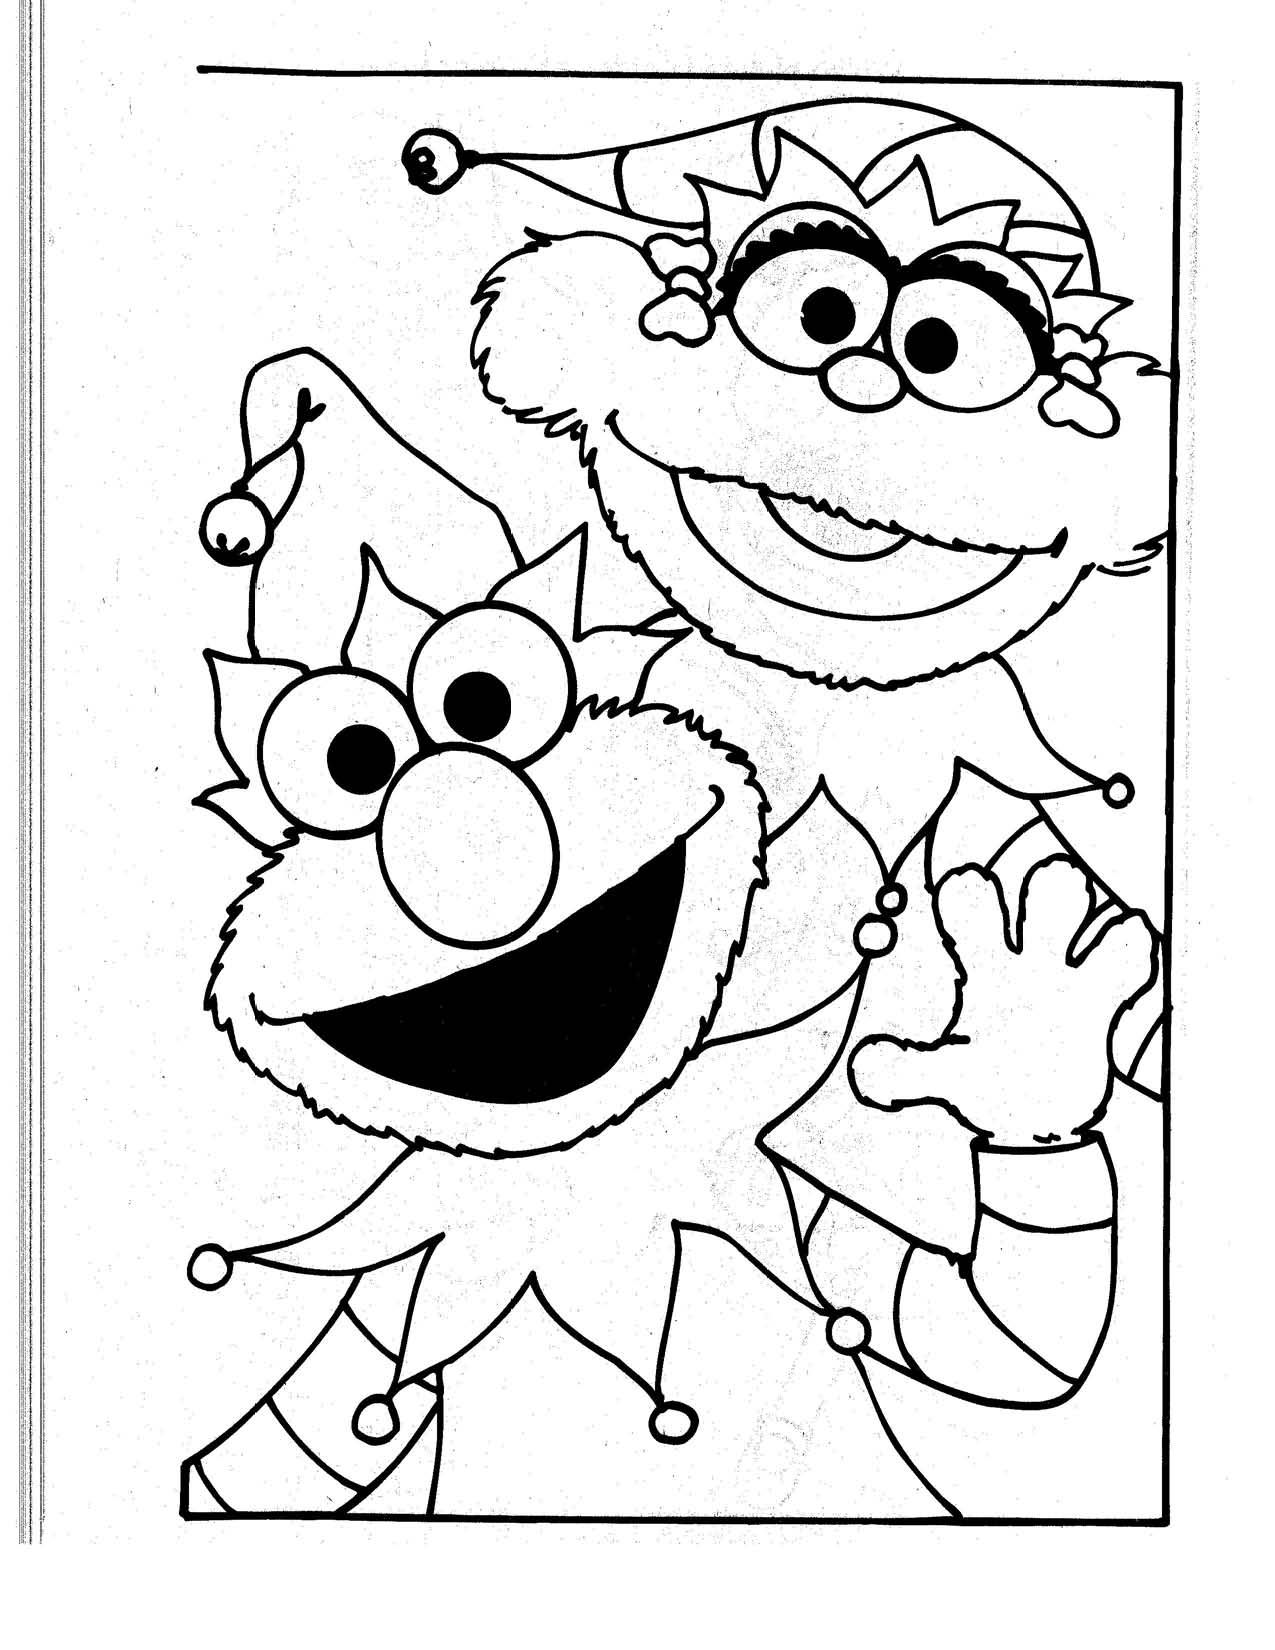 Free Printable Elmo Coloring Pages For Kids Mase S 1st Bday Elmo